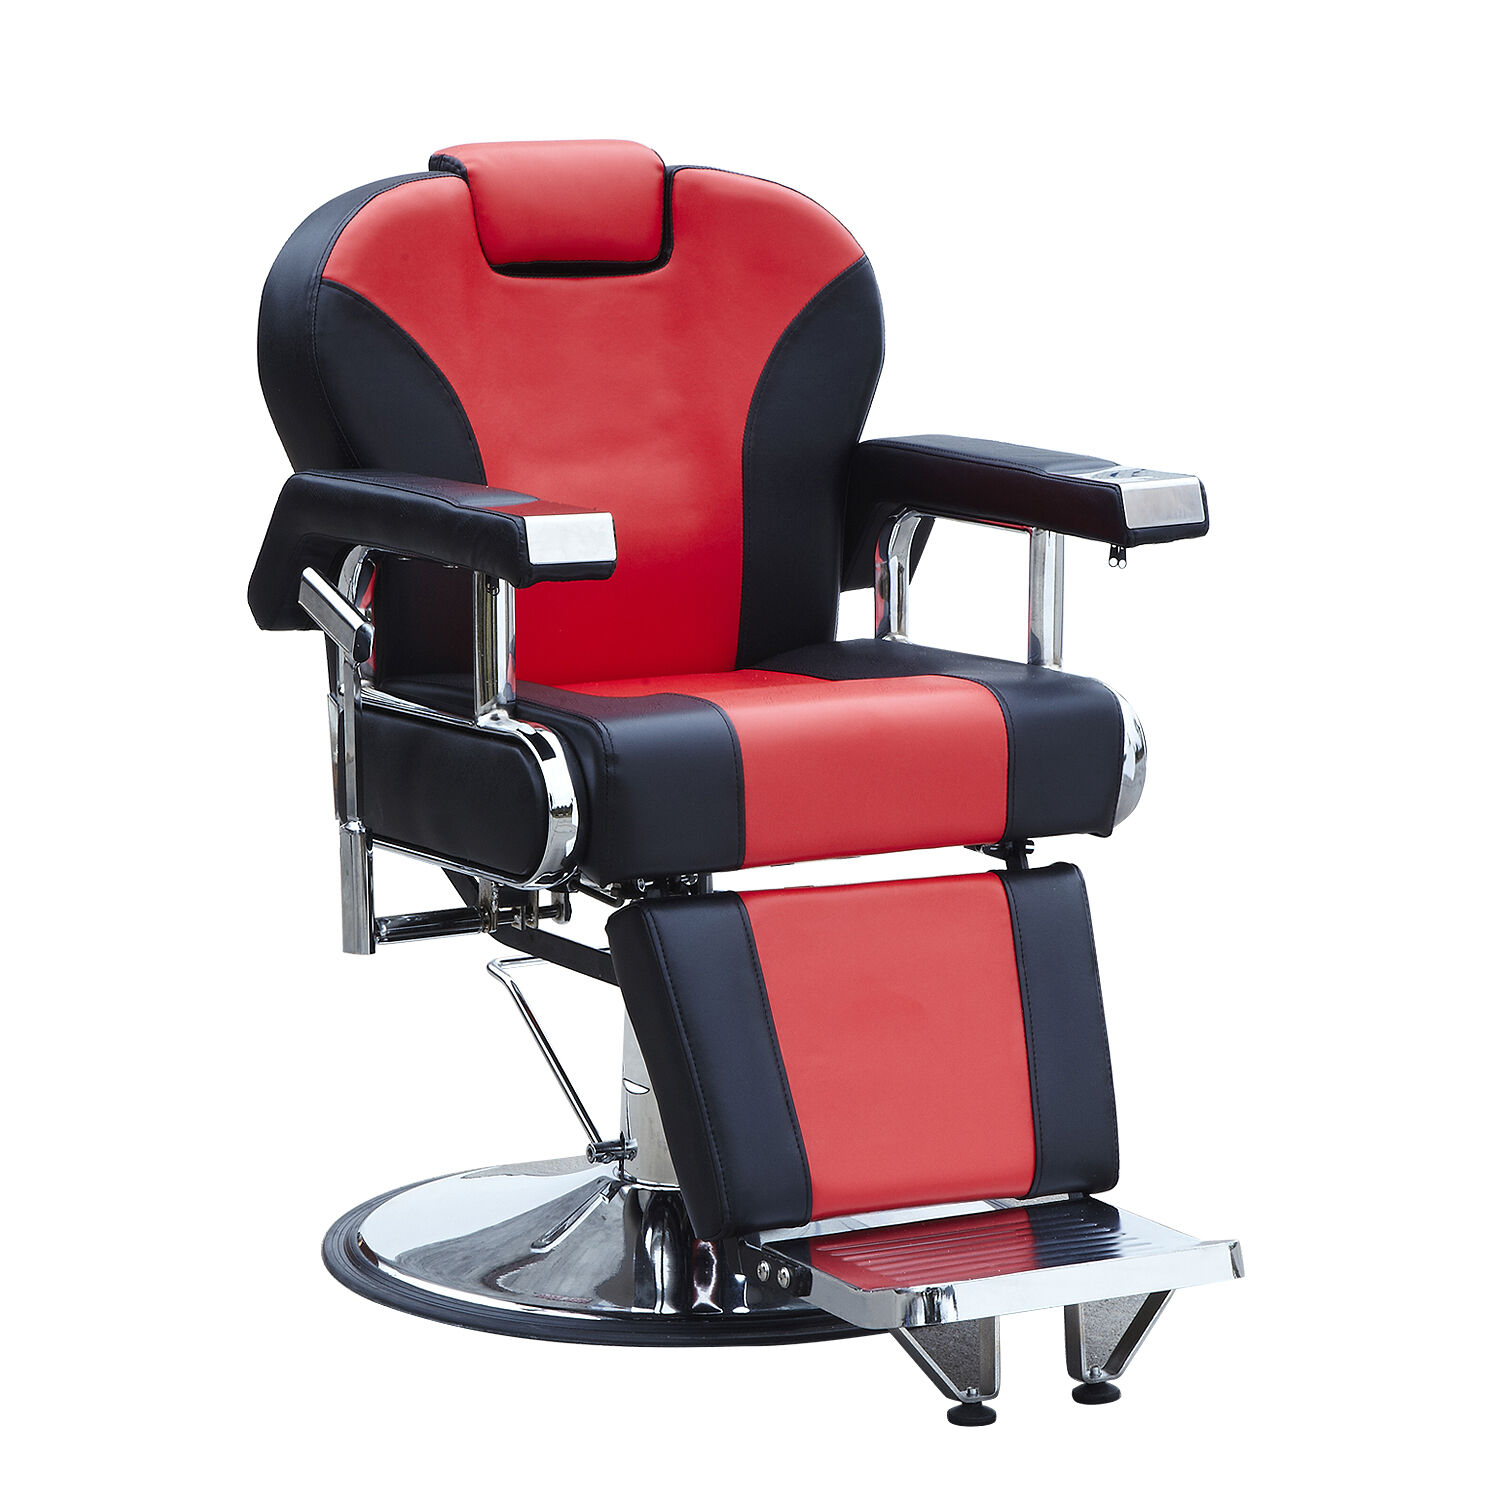 All Purpose Hydraulic Recline Barber Chair Heavy Duty Salon Beauty Spa Equipment